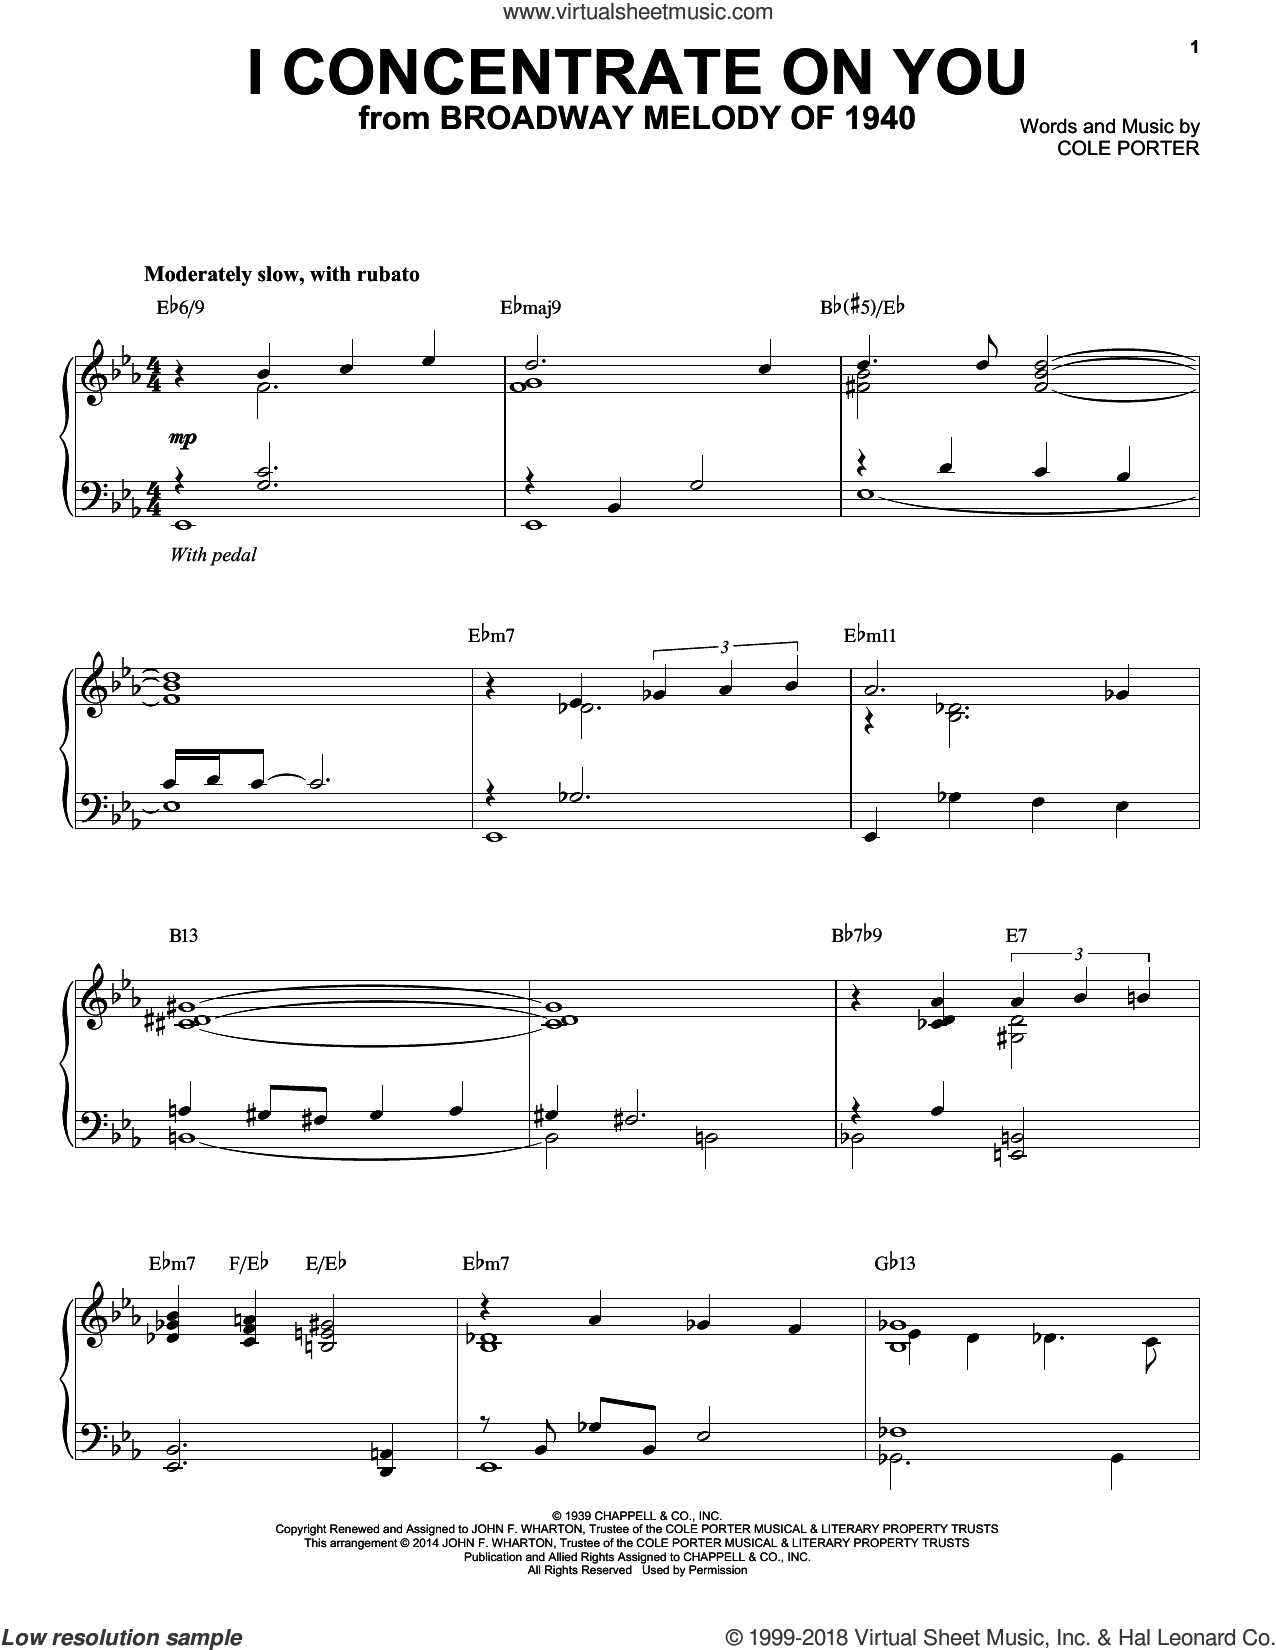 I Concentrate On You sheet music for piano solo by Cole Porter, intermediate skill level